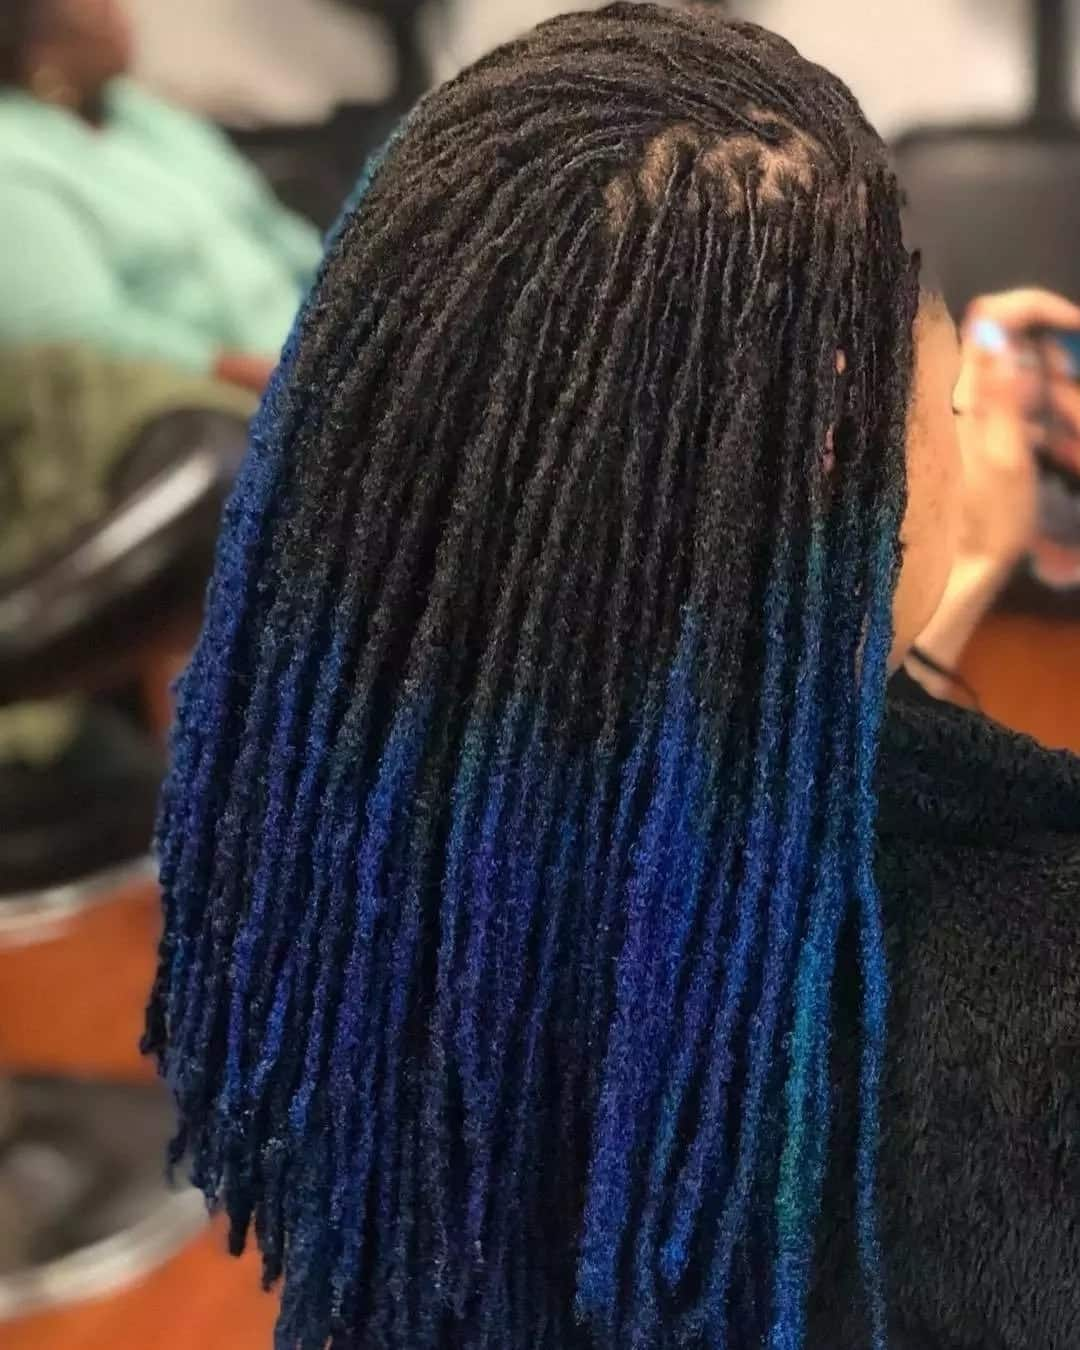 How to do dreadlocks hairstylesHow to make dreadlocks hairstyles Dreadlocks hairstyles how to how do you start to dread your hair?